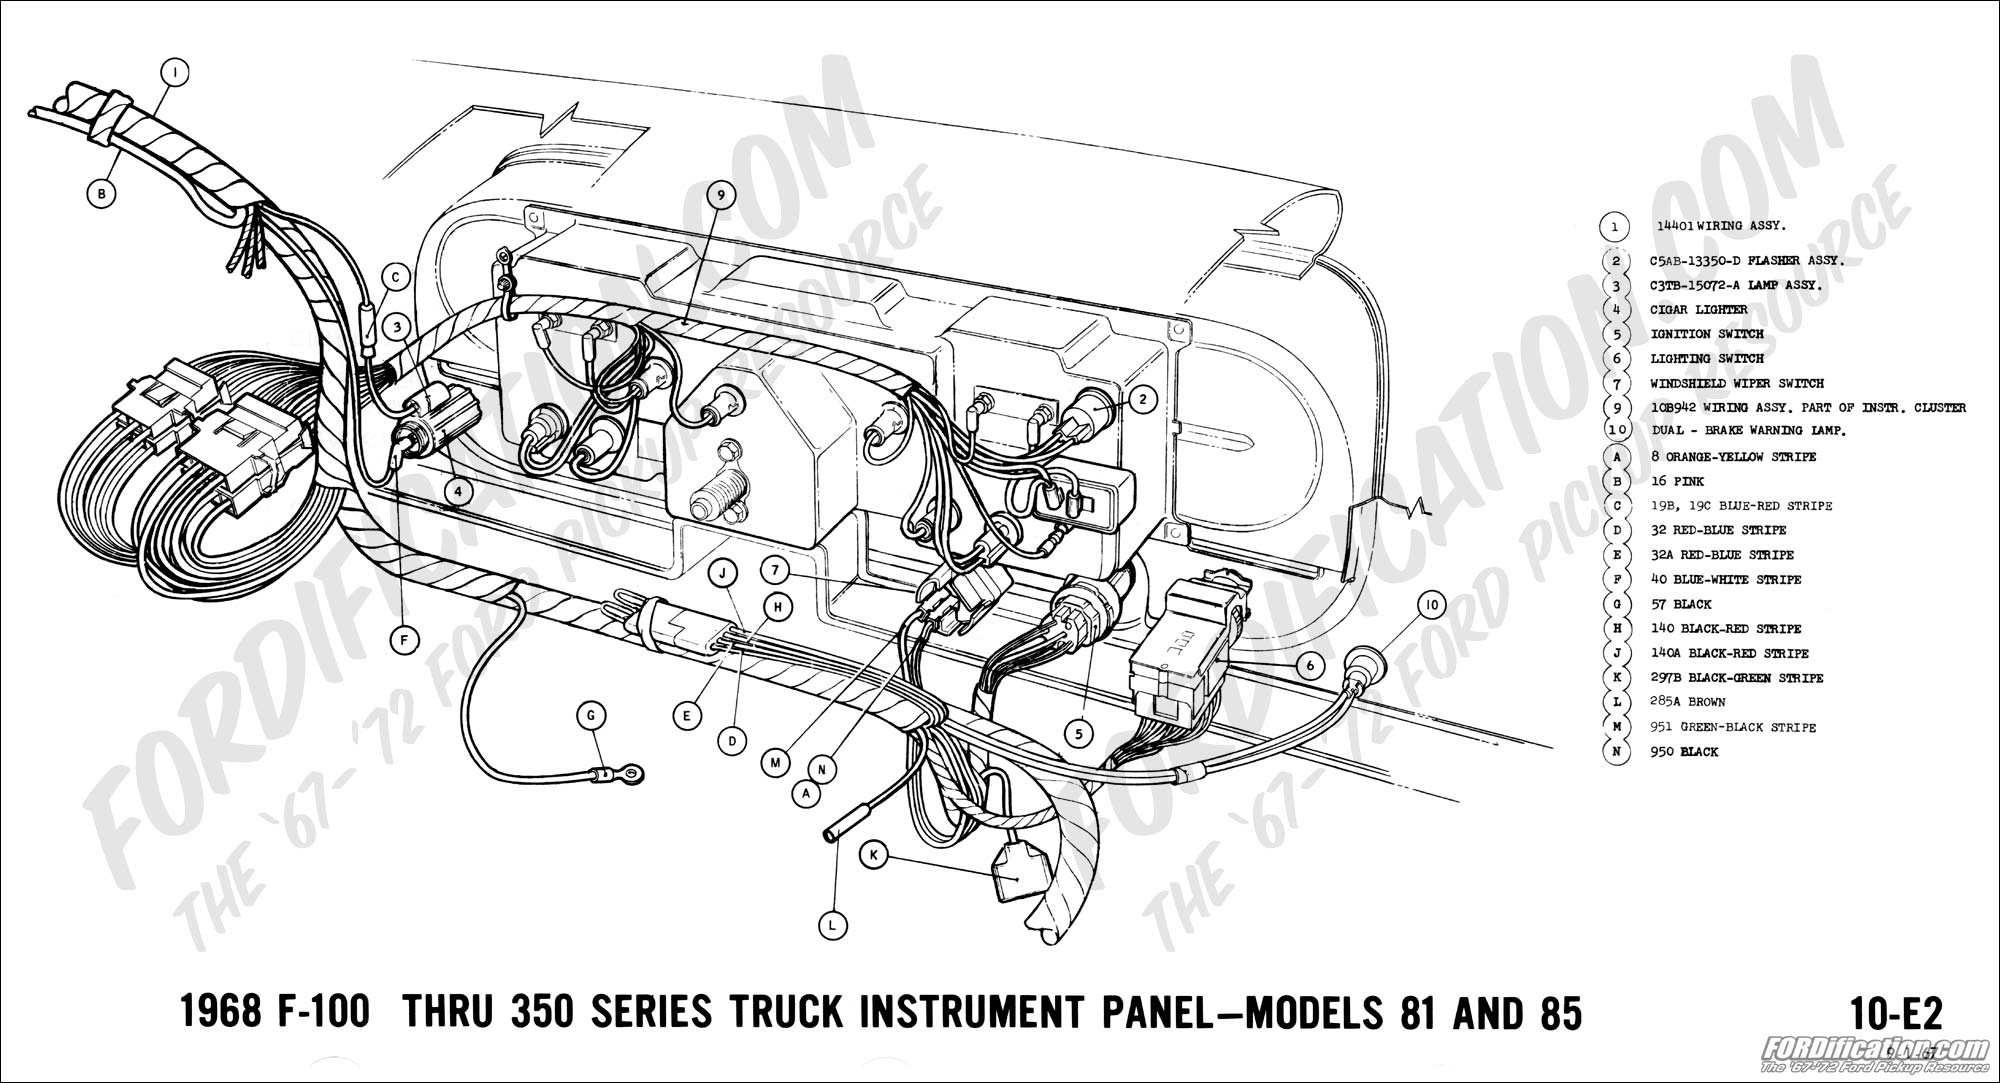 hight resolution of 1968 f 100 thru f 350 instrument panel